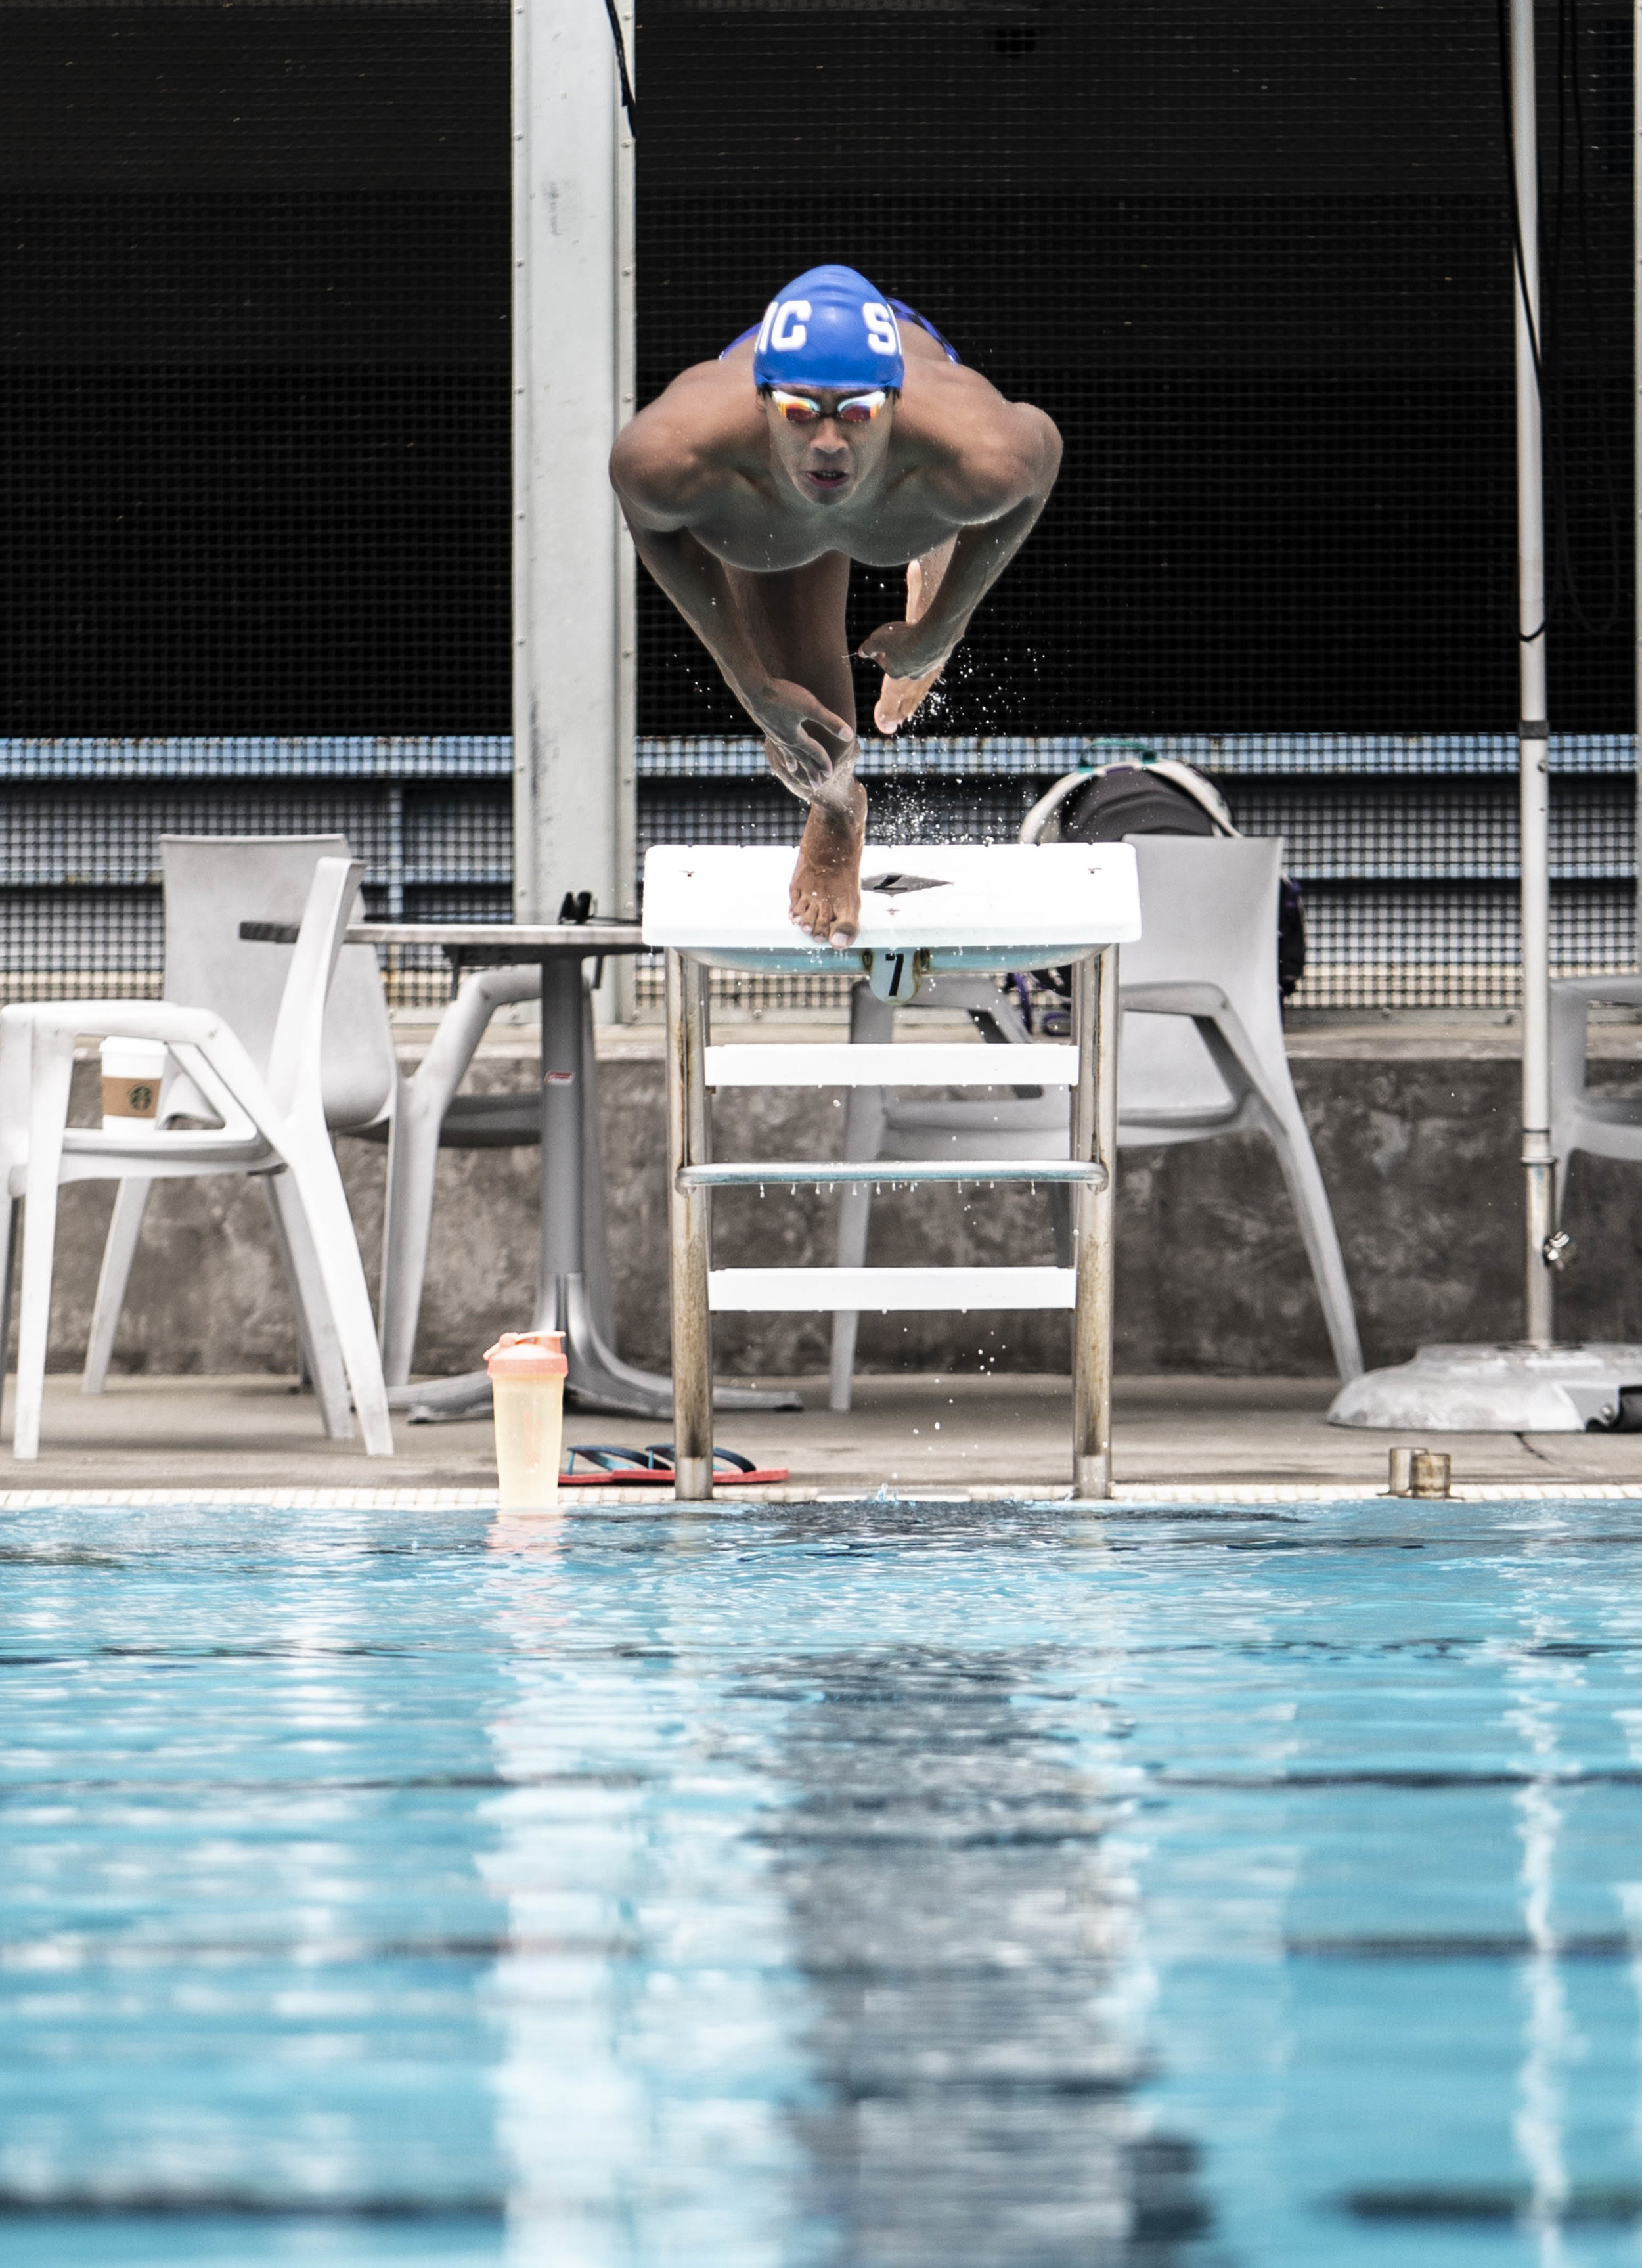 Alonso Escobedo from Santa Monica College (SMC) swimming team, practicing for State Championship in San Jose. Santa Monica College on April 29, 2019, Santa Monica, Calif. (Yasamin Jtehrani / The Corsair)